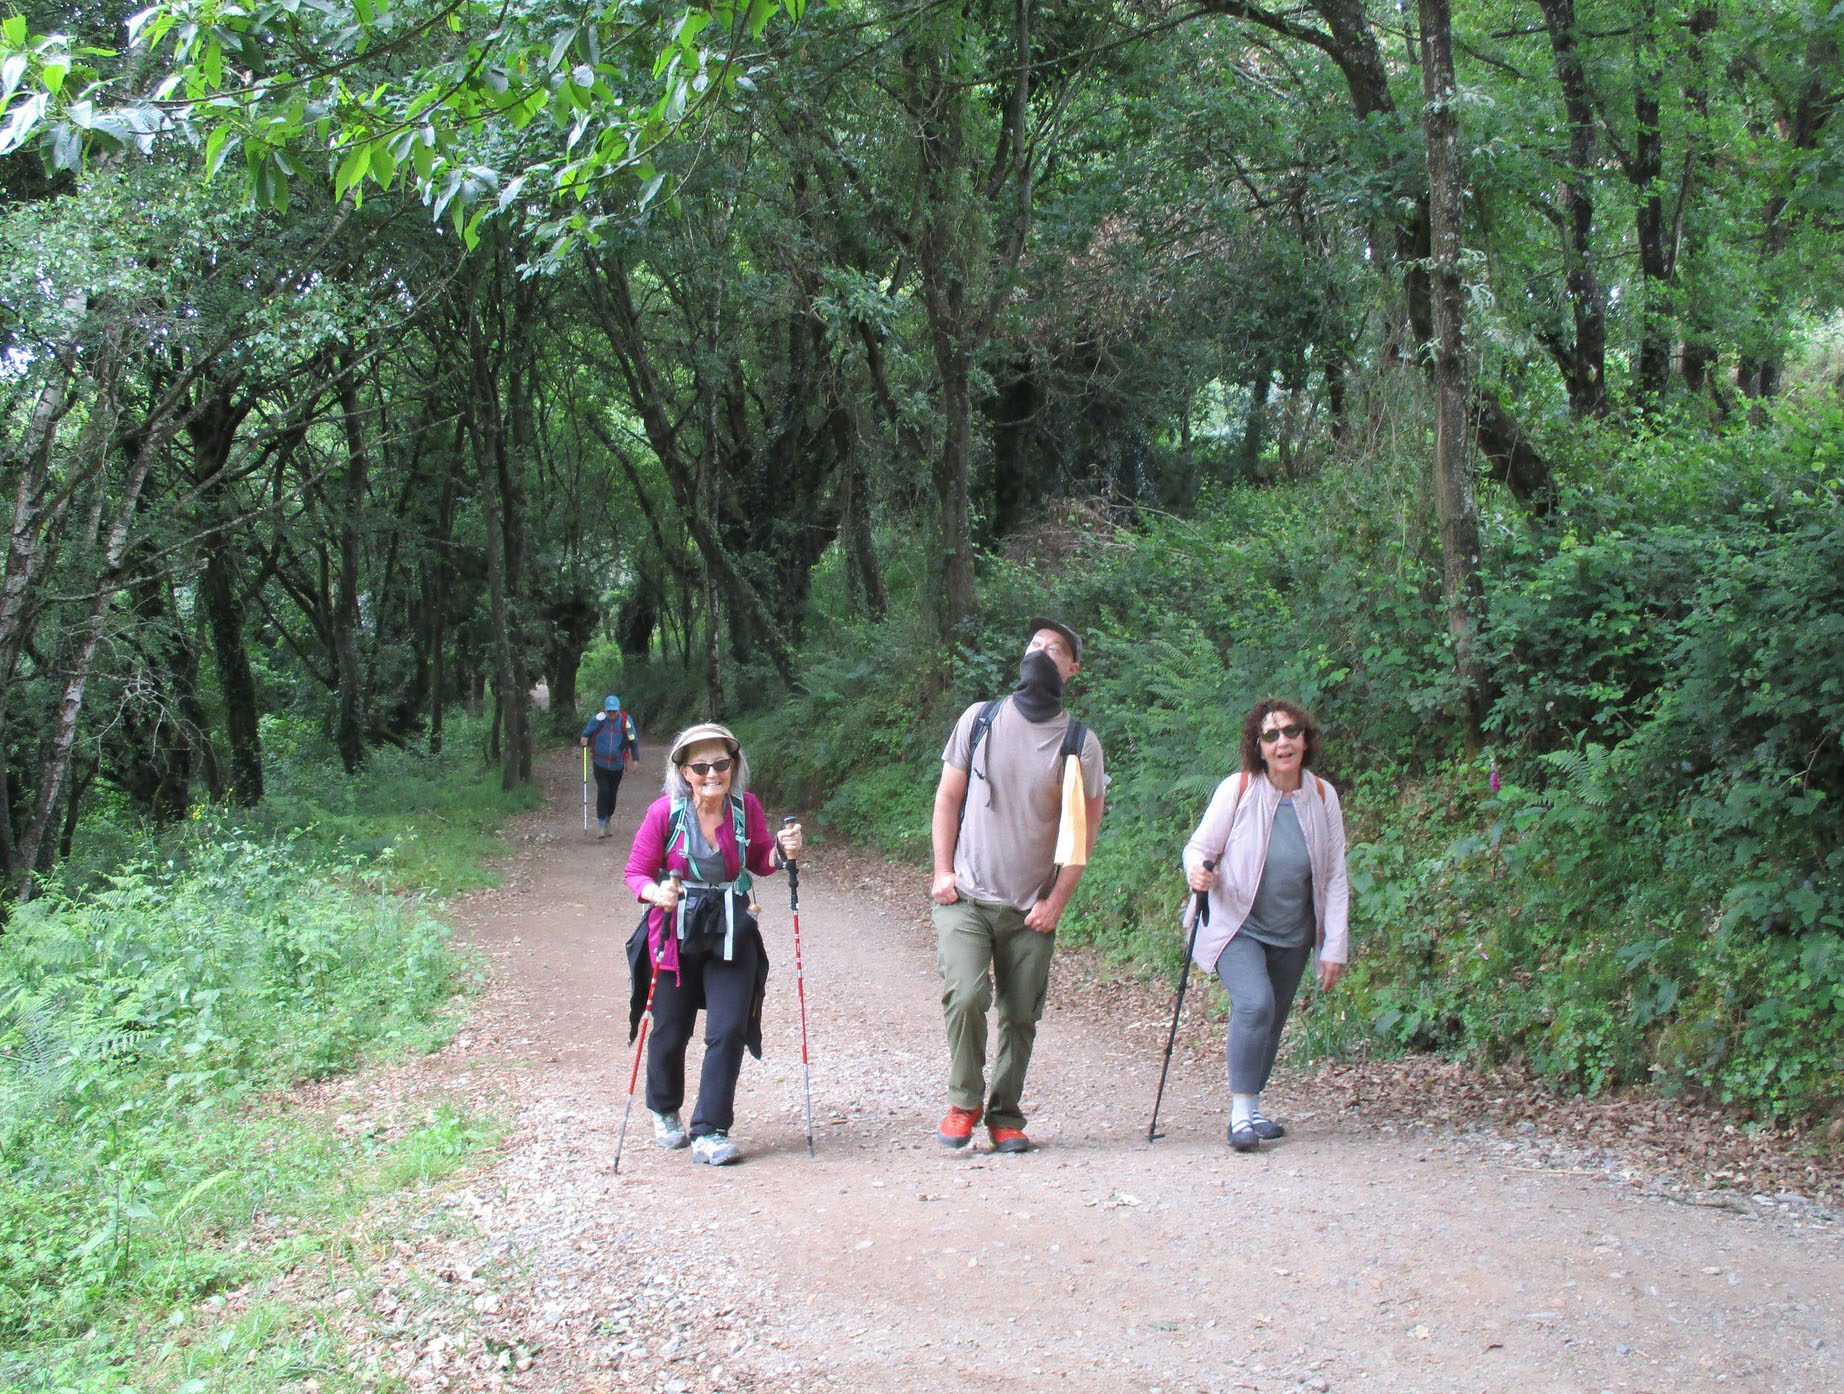 Camino de Santiago Tour - Jun 10, 2019